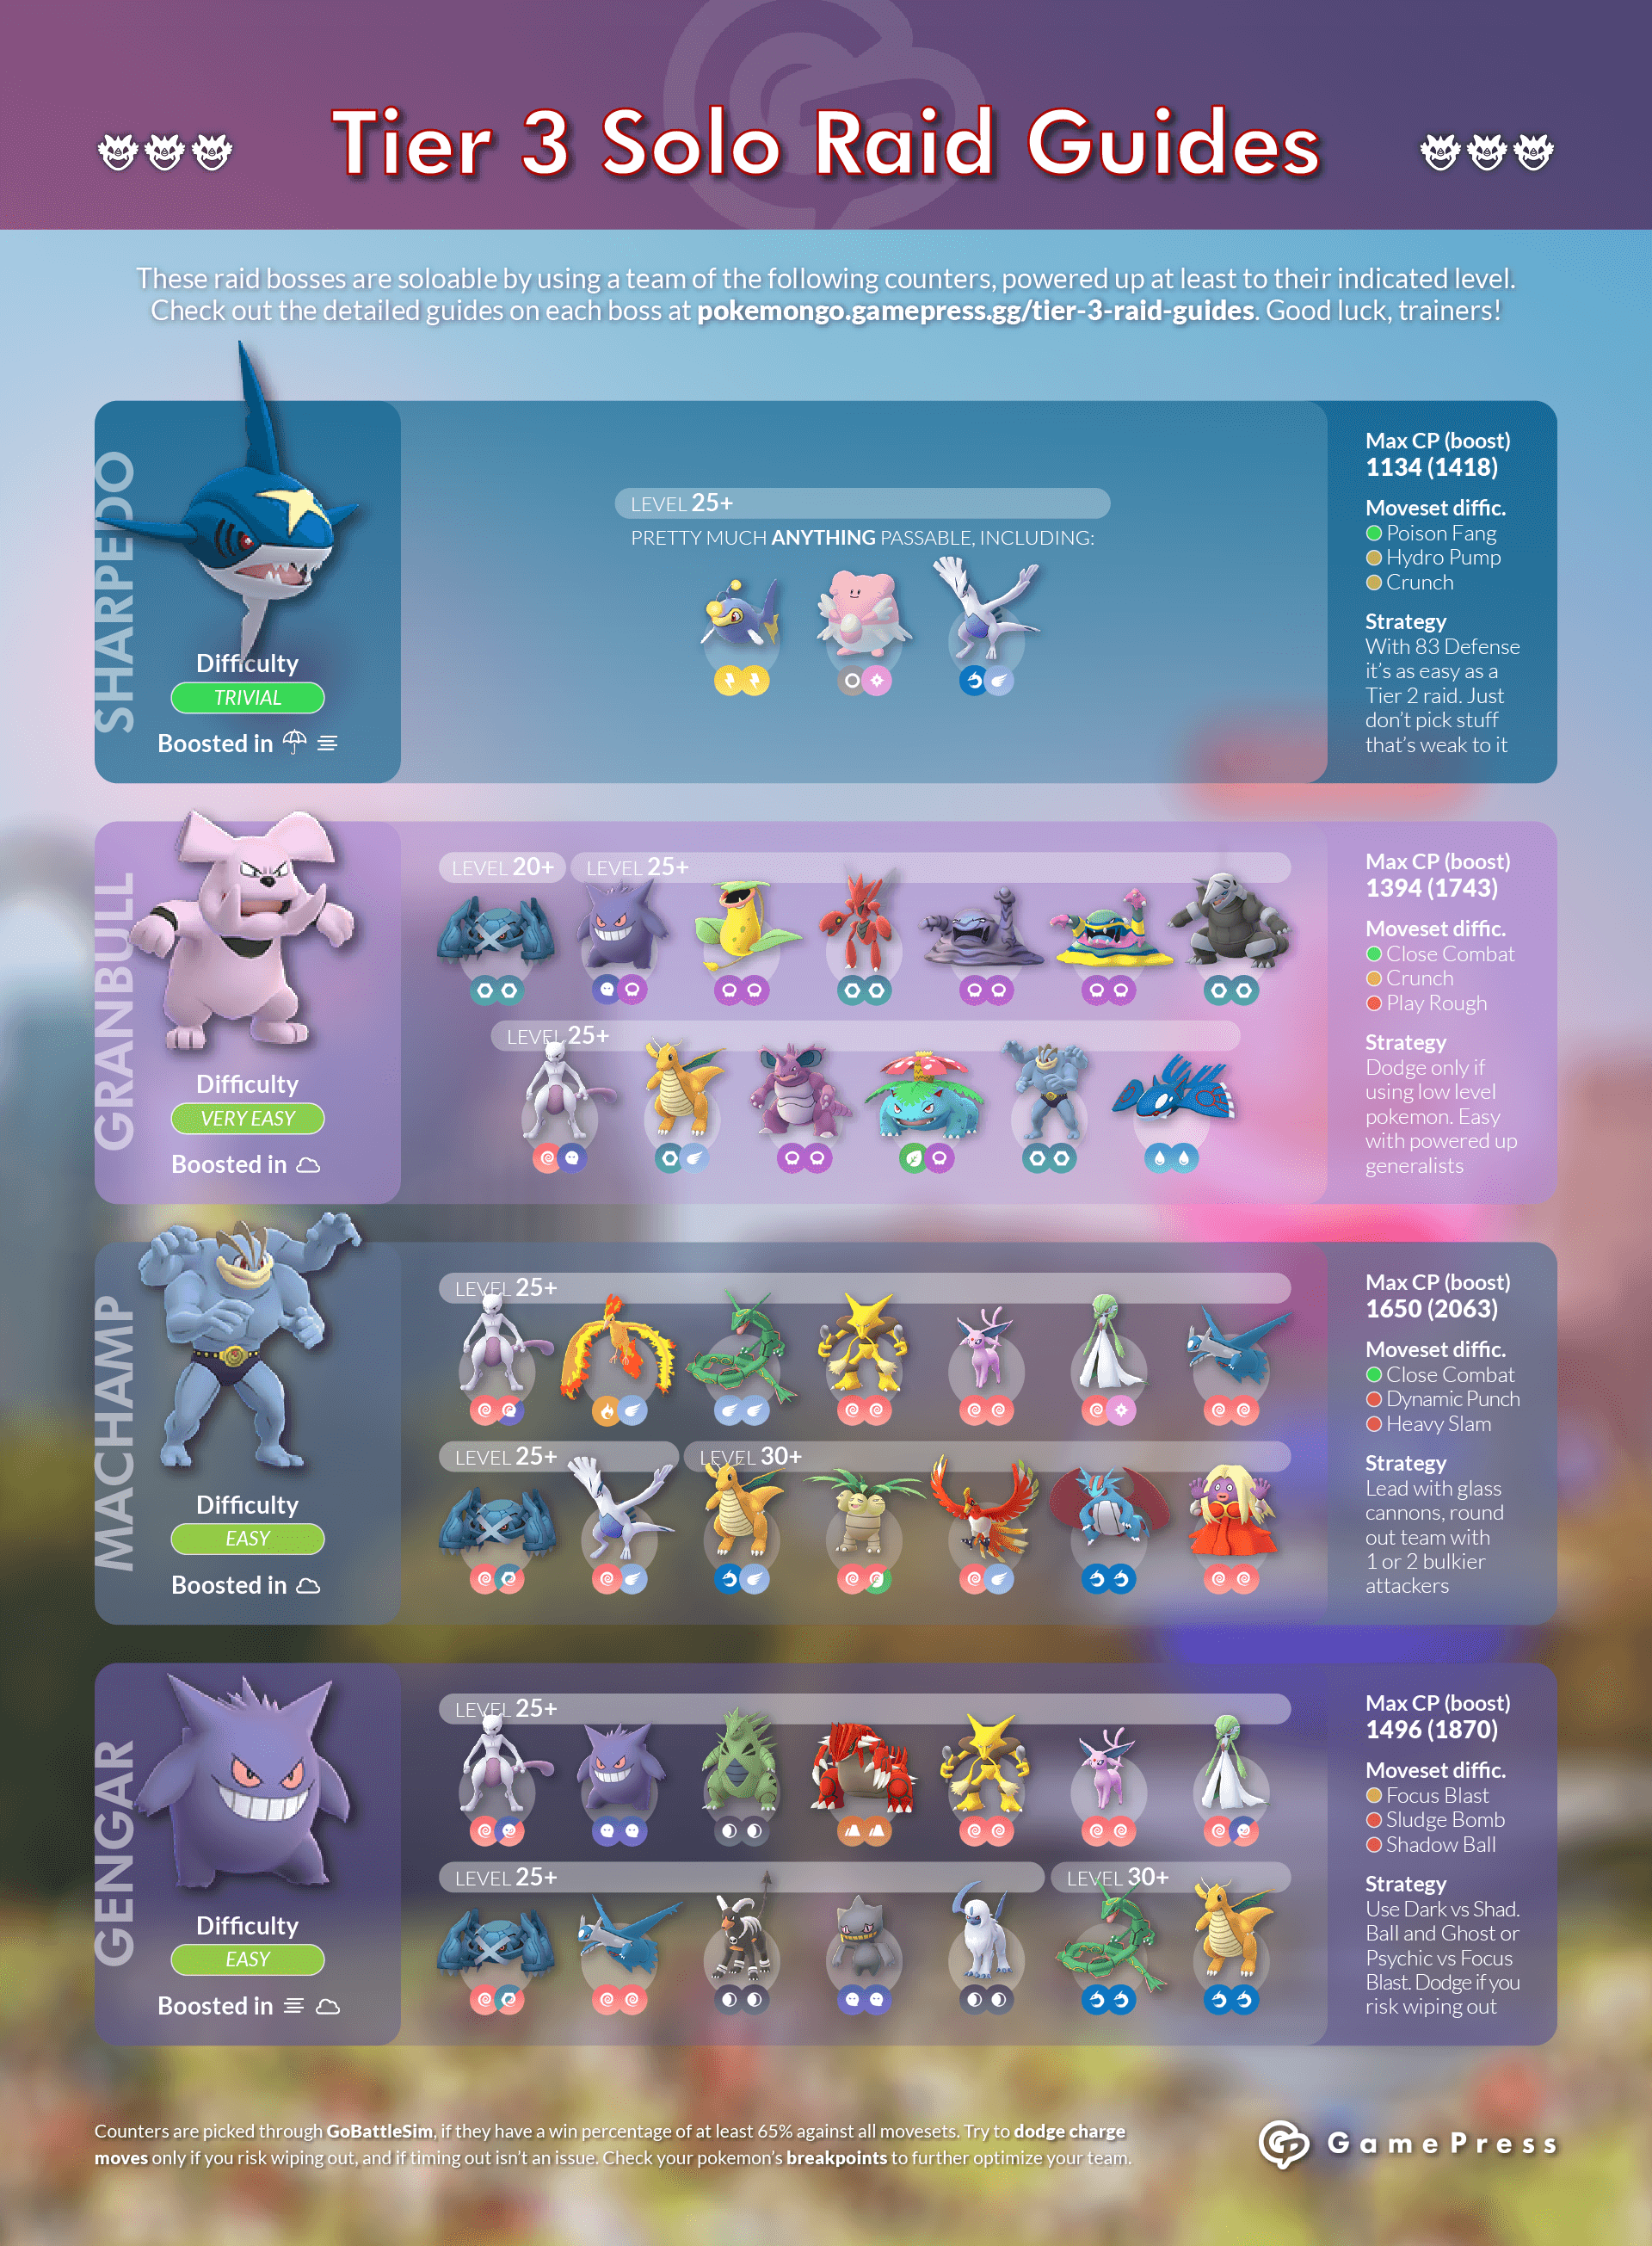 Tier 3 Raid Guides | Pokemon GO Wiki - GamePress